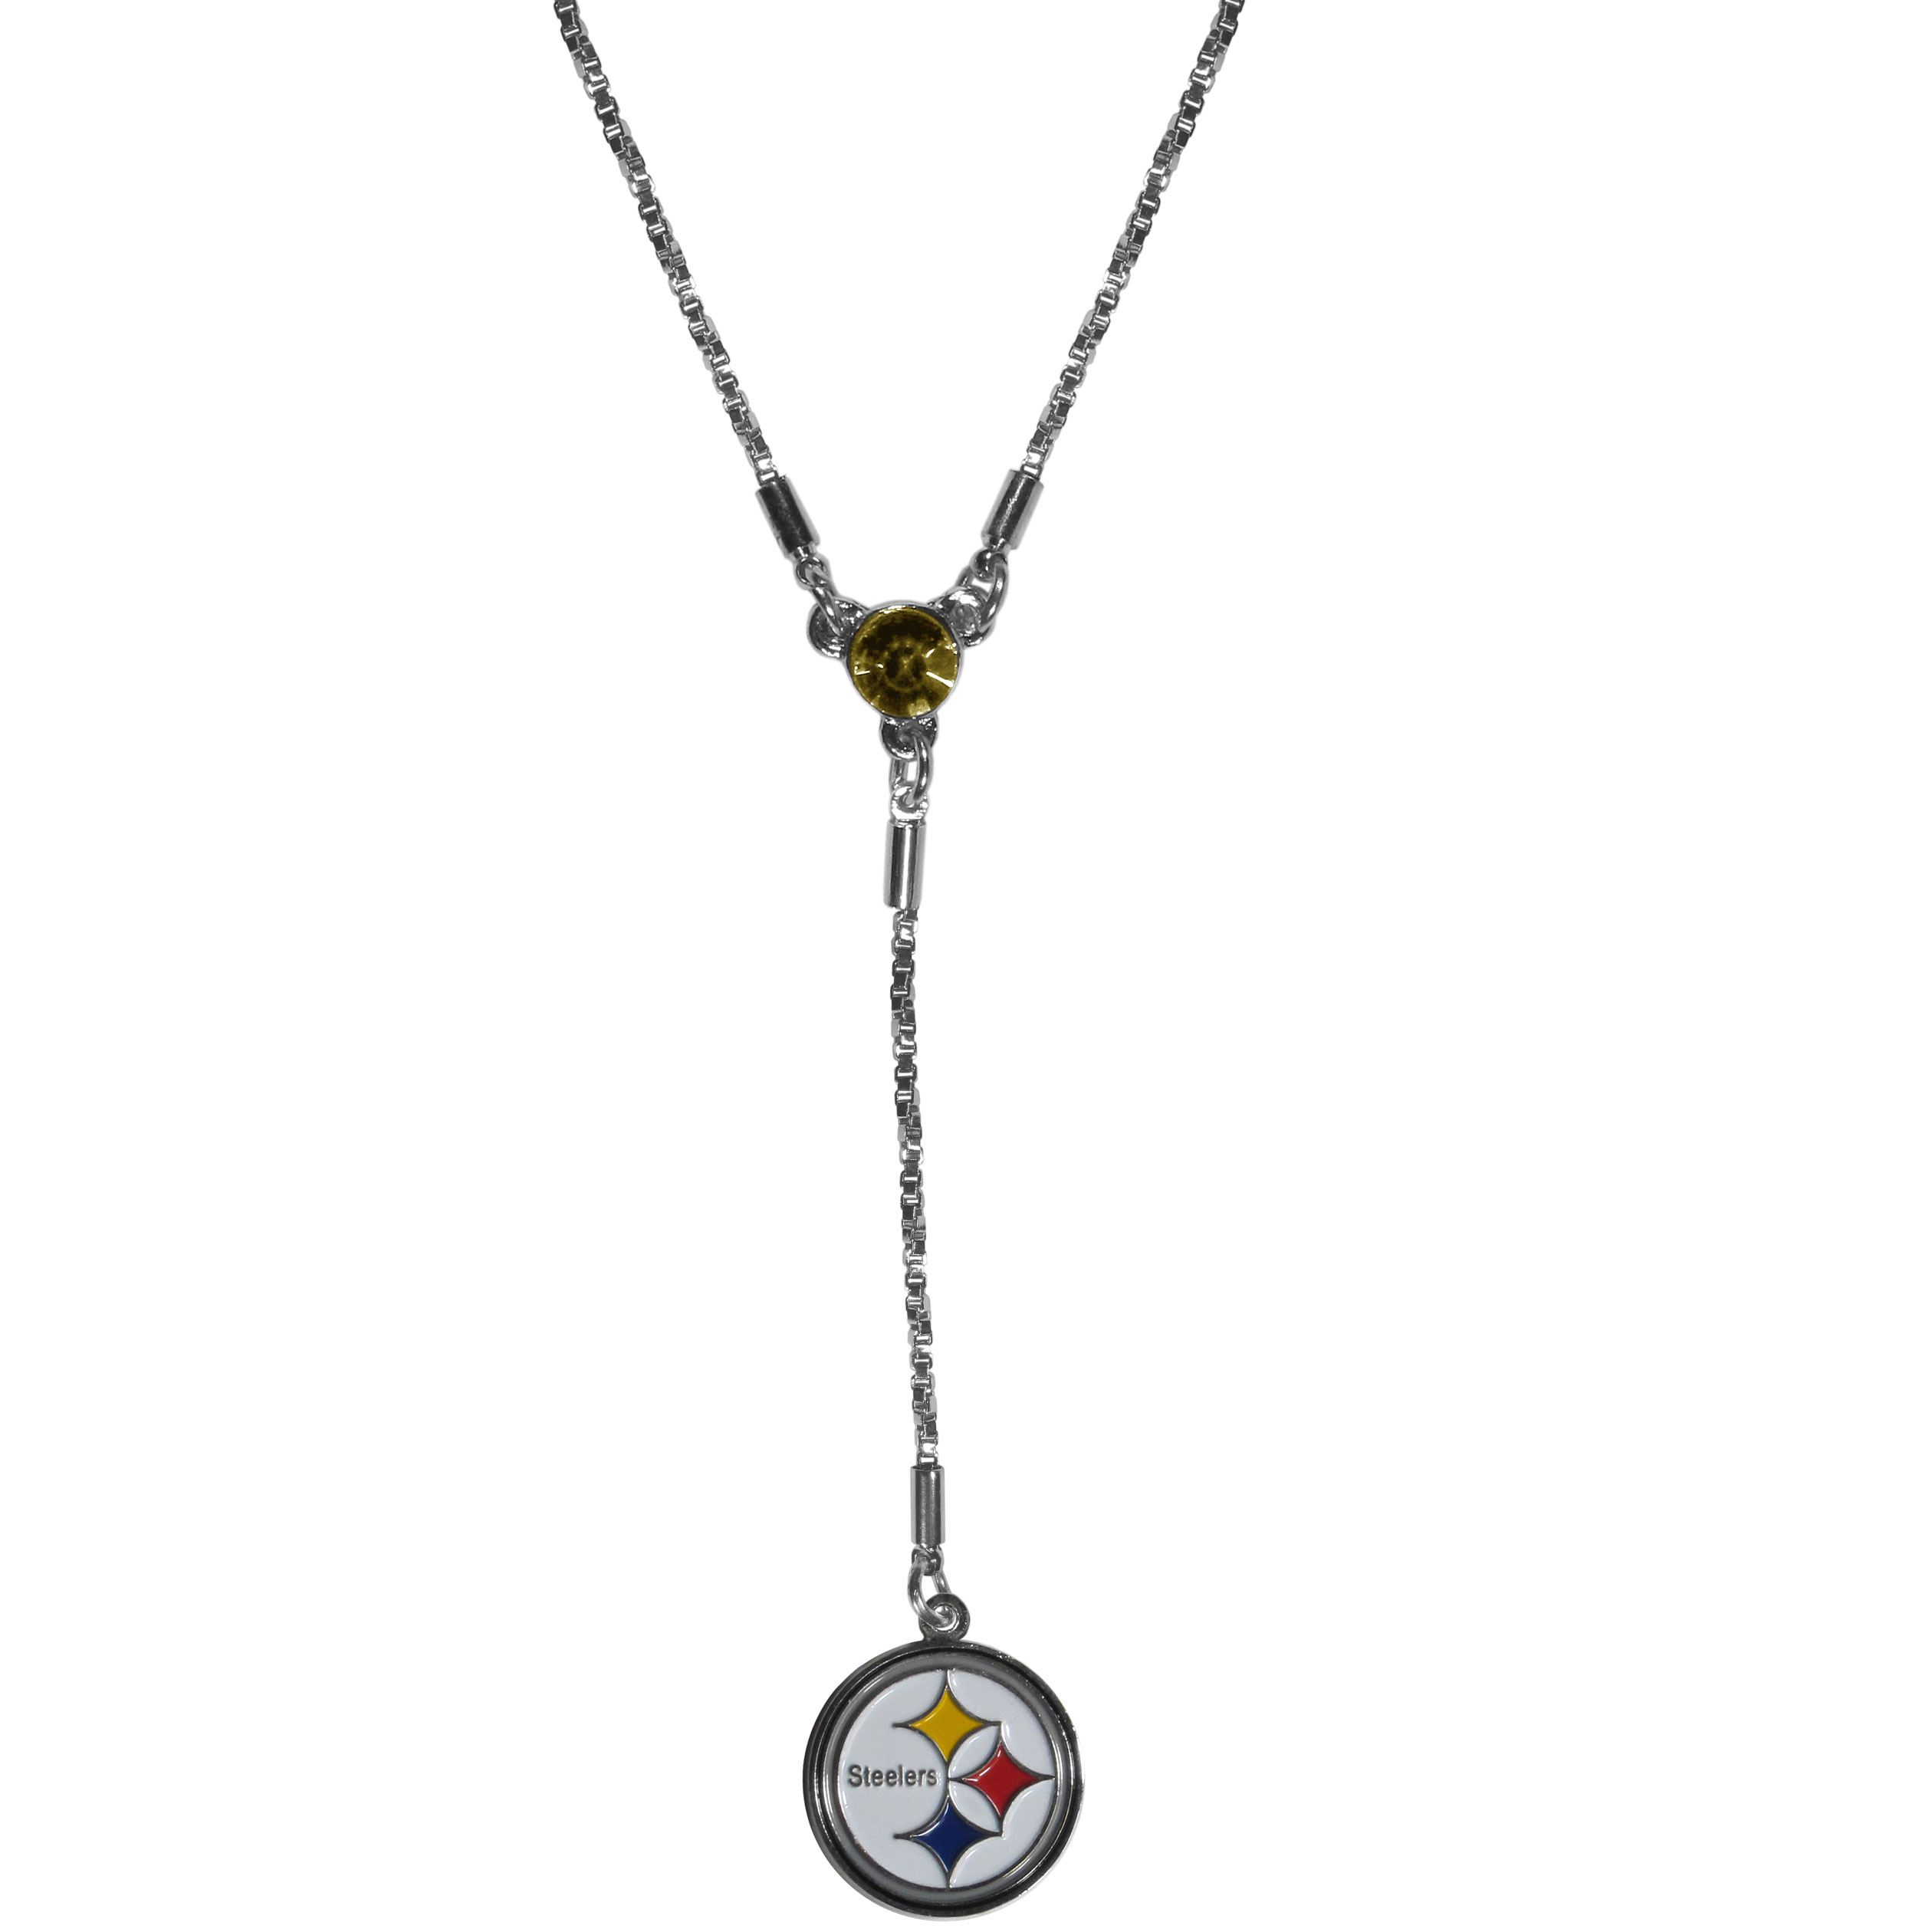 Pittsburgh Steelers Lariat Necklace - This designer look is a stylish version of the classic lariat necklace. The chic box chain is 16 inches long with a 2 inch extender, the Y drop features a large team colored crystal with an expertly carved team charm. This trendy look is a perfect blend of sporty and chic making is a mush-have fashion accessory for the fashion-forward Pittsburgh Steelers fan.